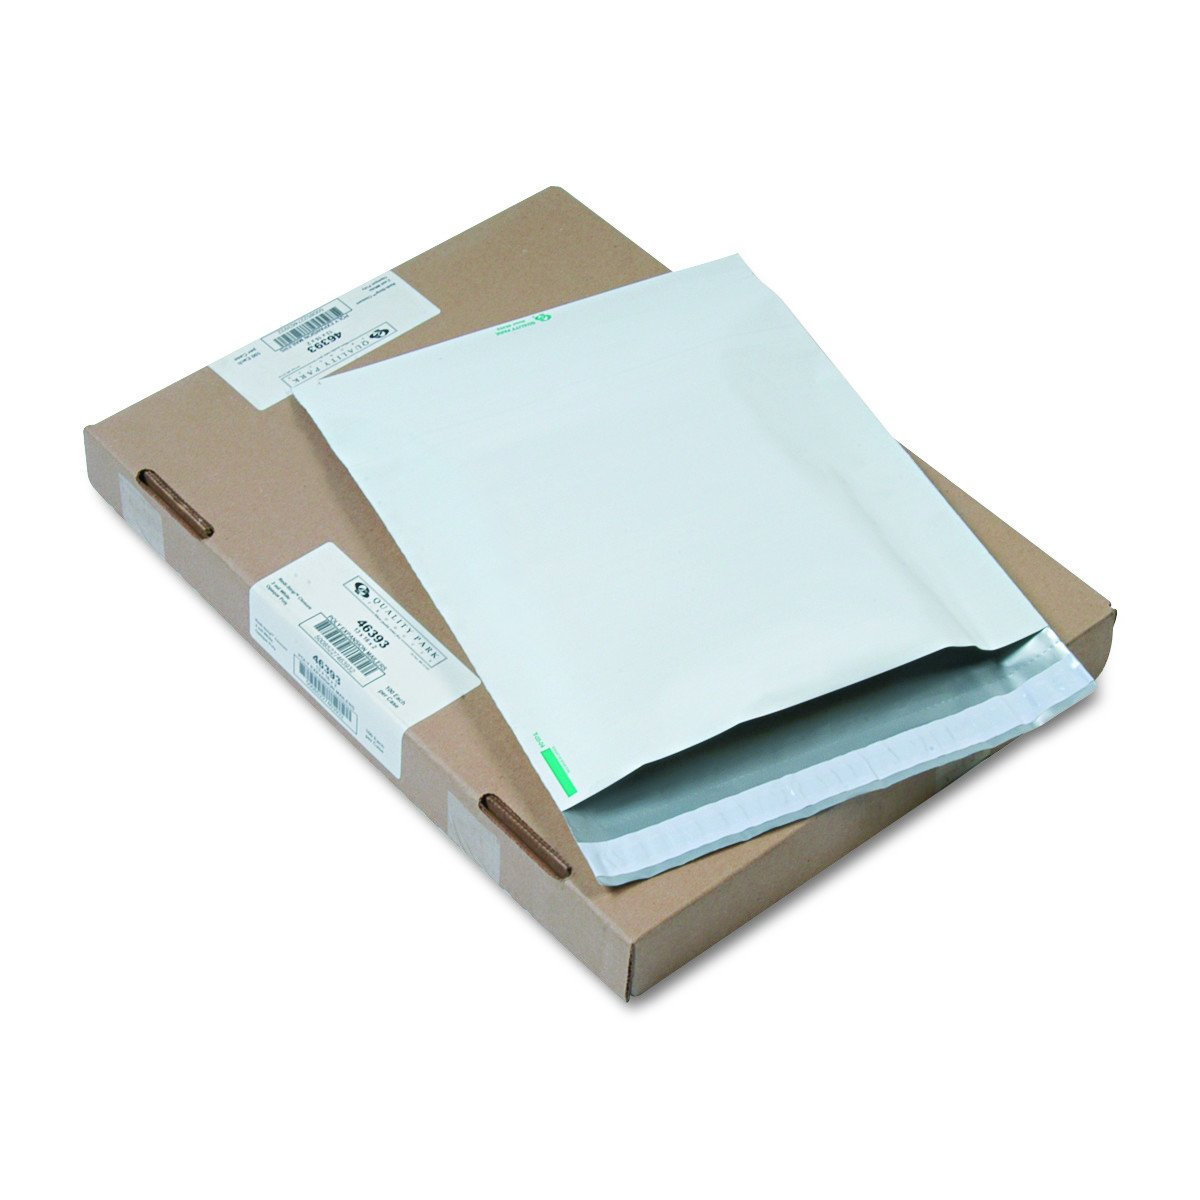 Quality Park 46393 Redi Strip Poly Expansion Mailer, 13 x 16 x 2, White (Case of 100)